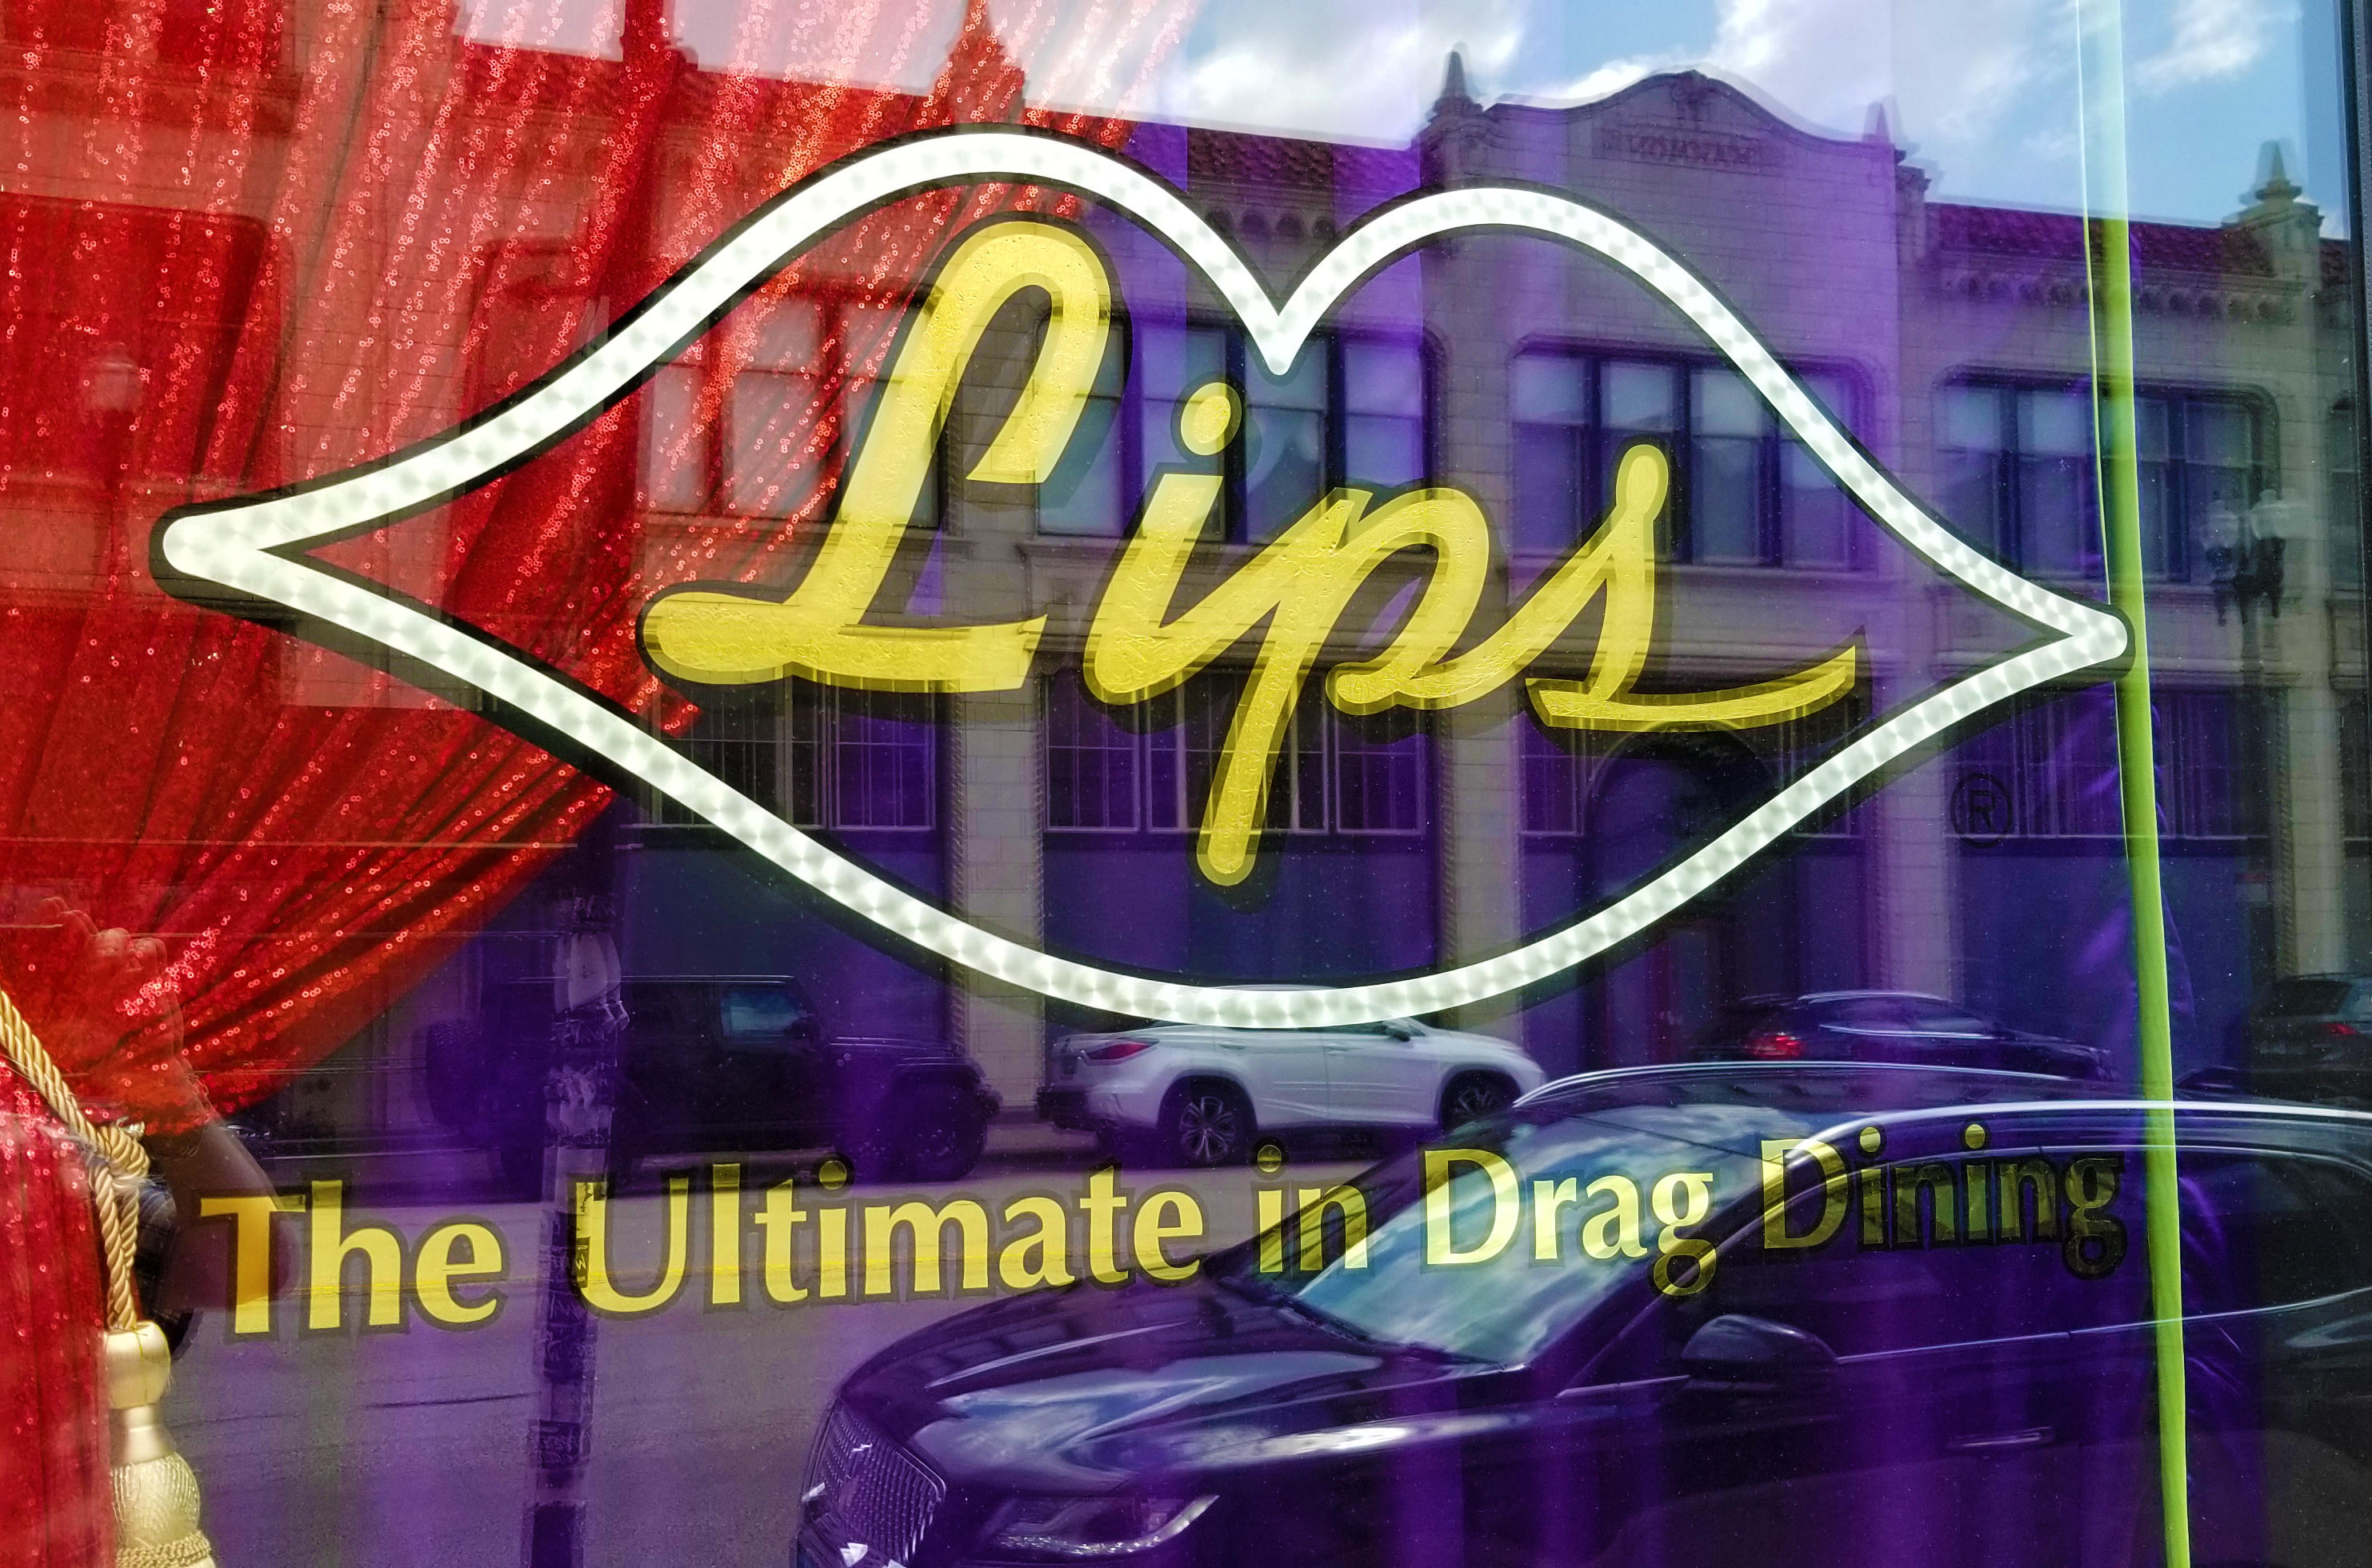 Lips Drag Queen Show Palace, Restaurant & Bar image 2